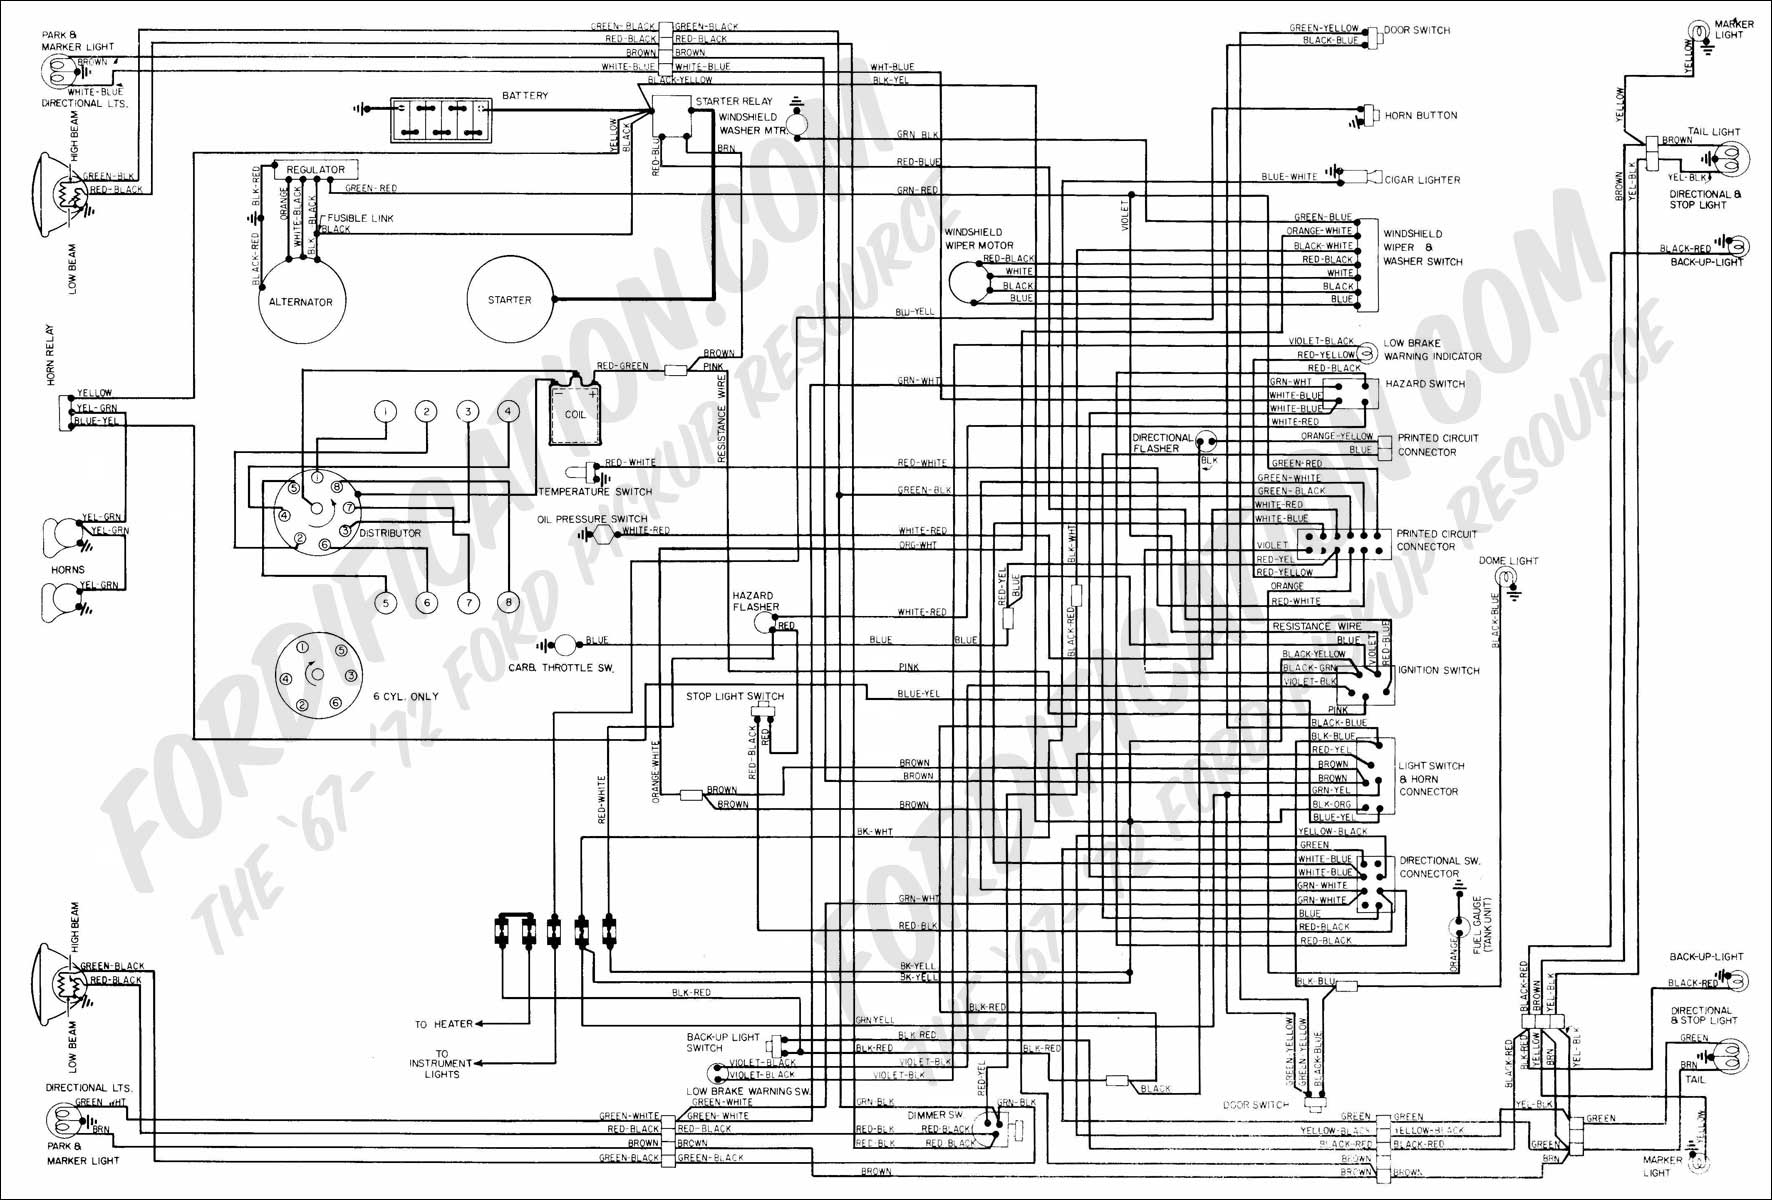 wiring diagram 72_quick ford ka 2006 wiring diagram ford wiring diagrams instruction 2006 ford focus wiring diagram at bayanpartner.co